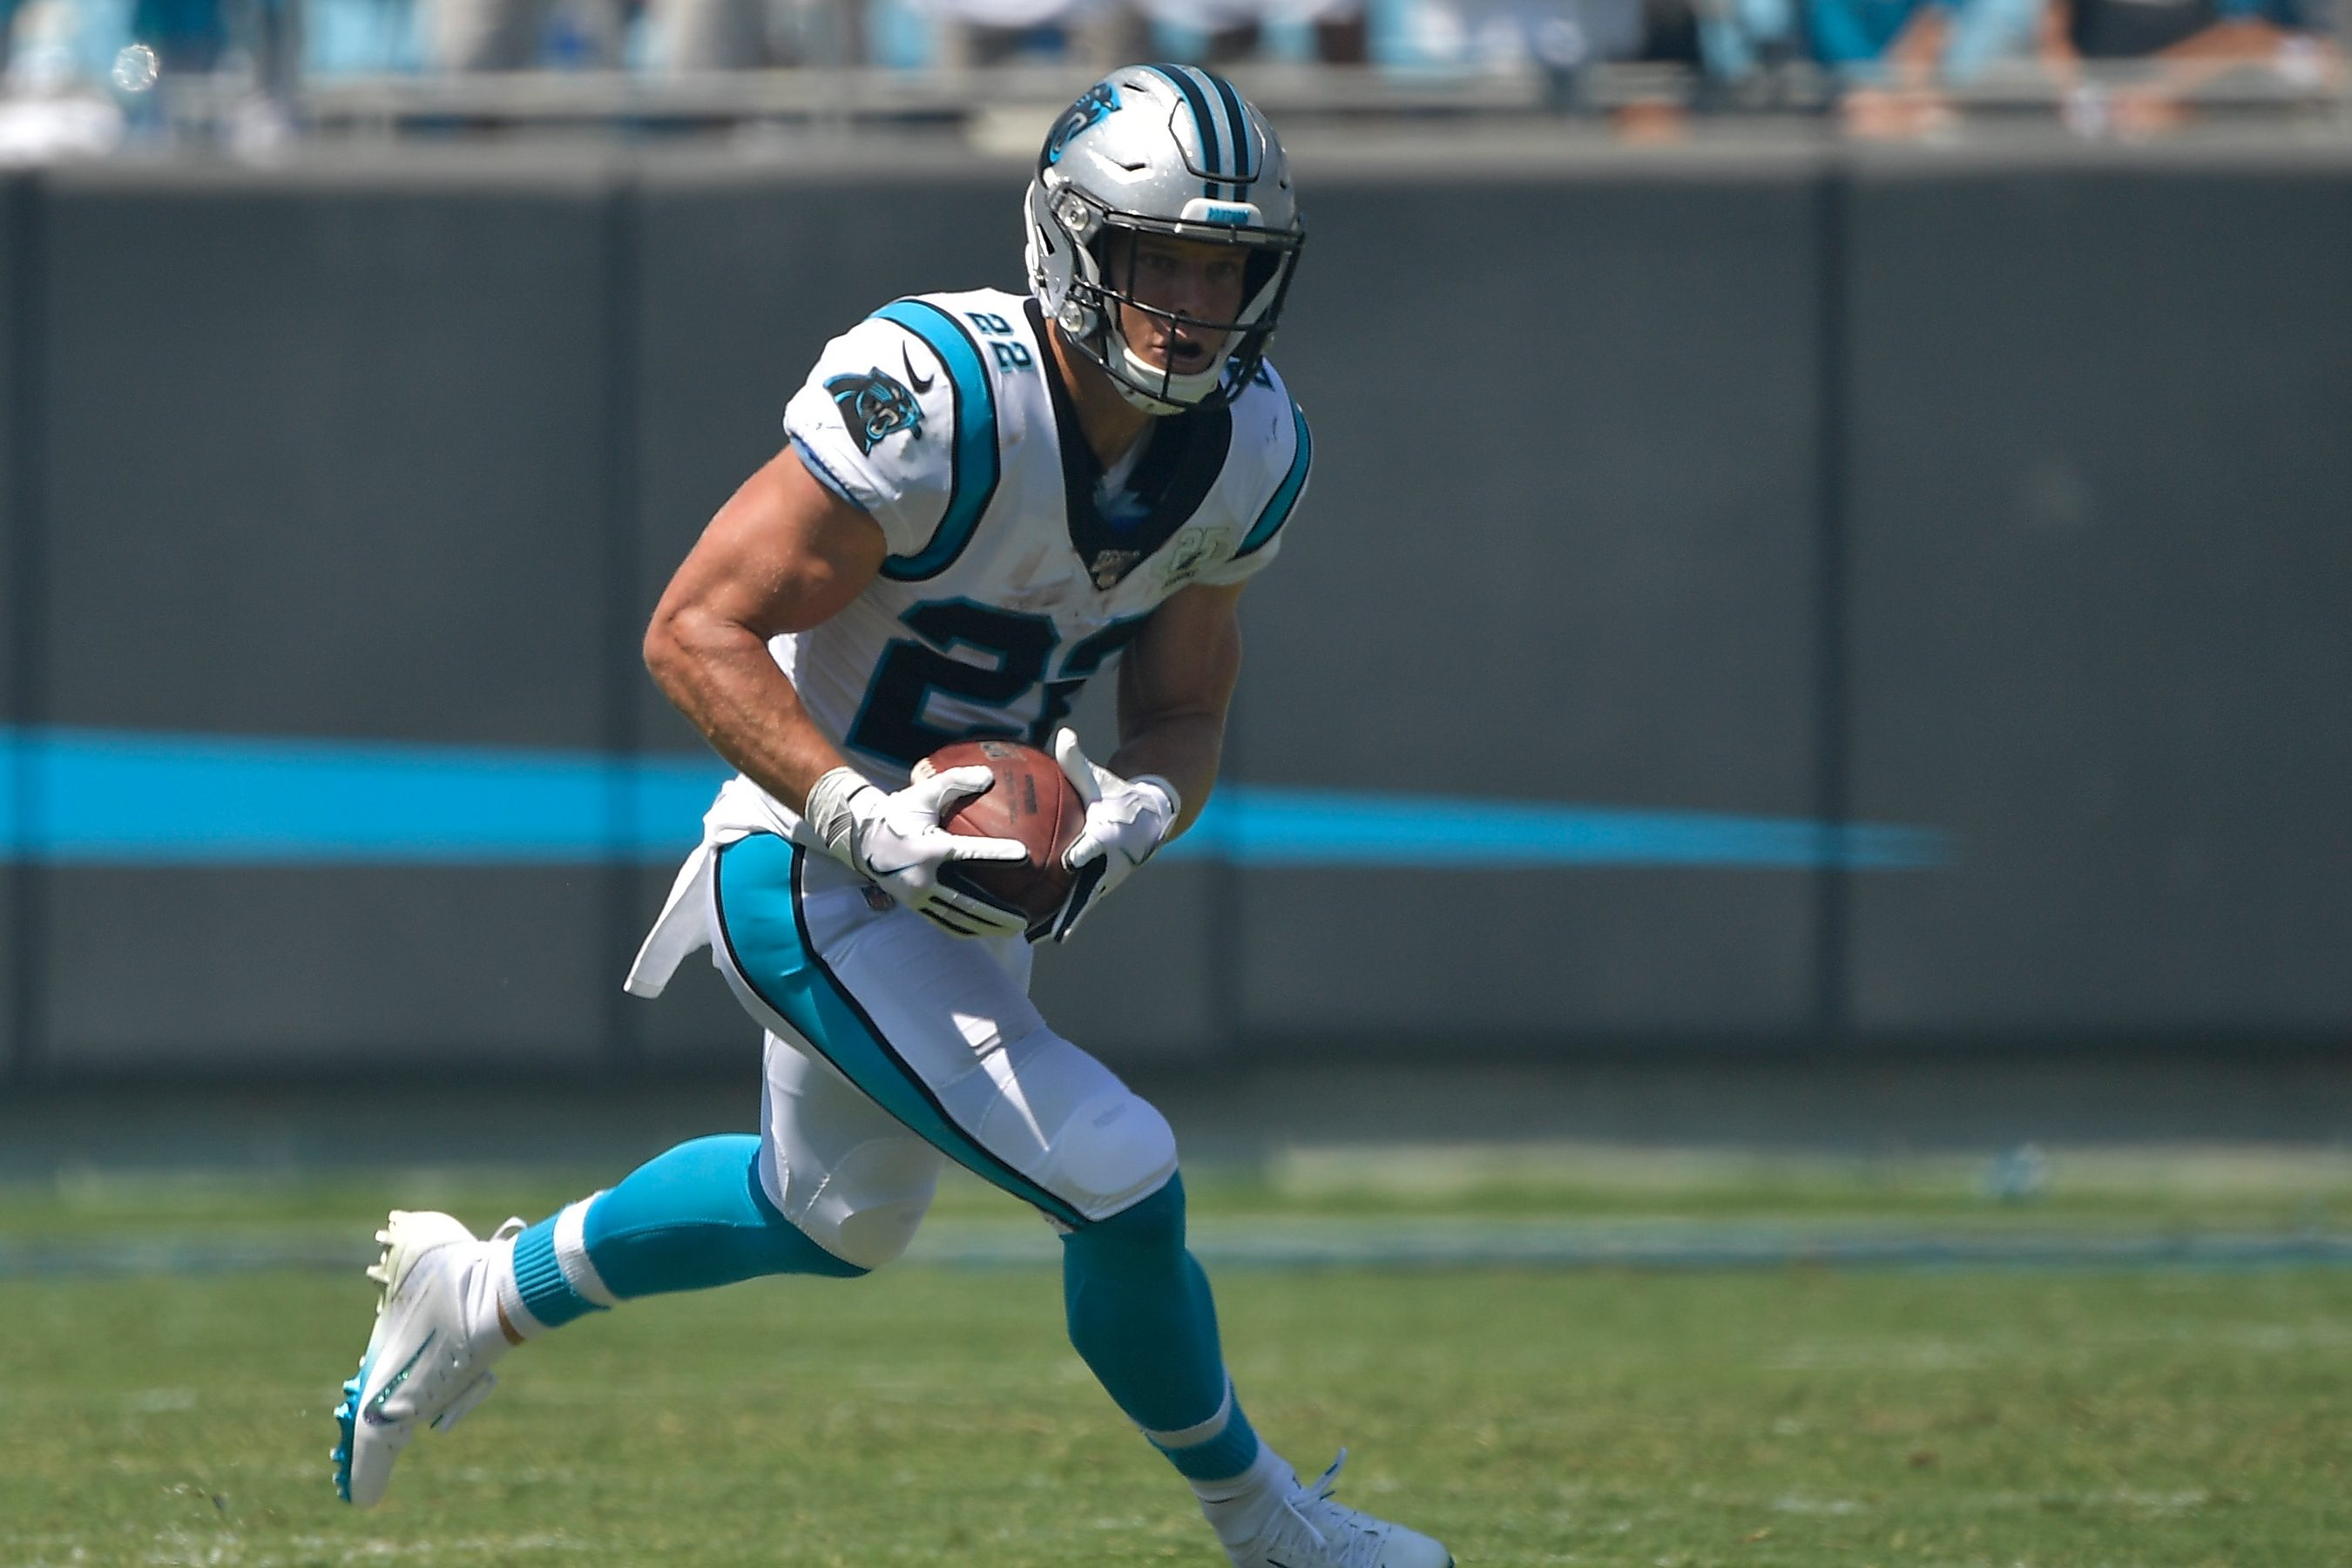 The NFL's Best Running Back, Christian McCaffrey, on the Importance of Being Versatile